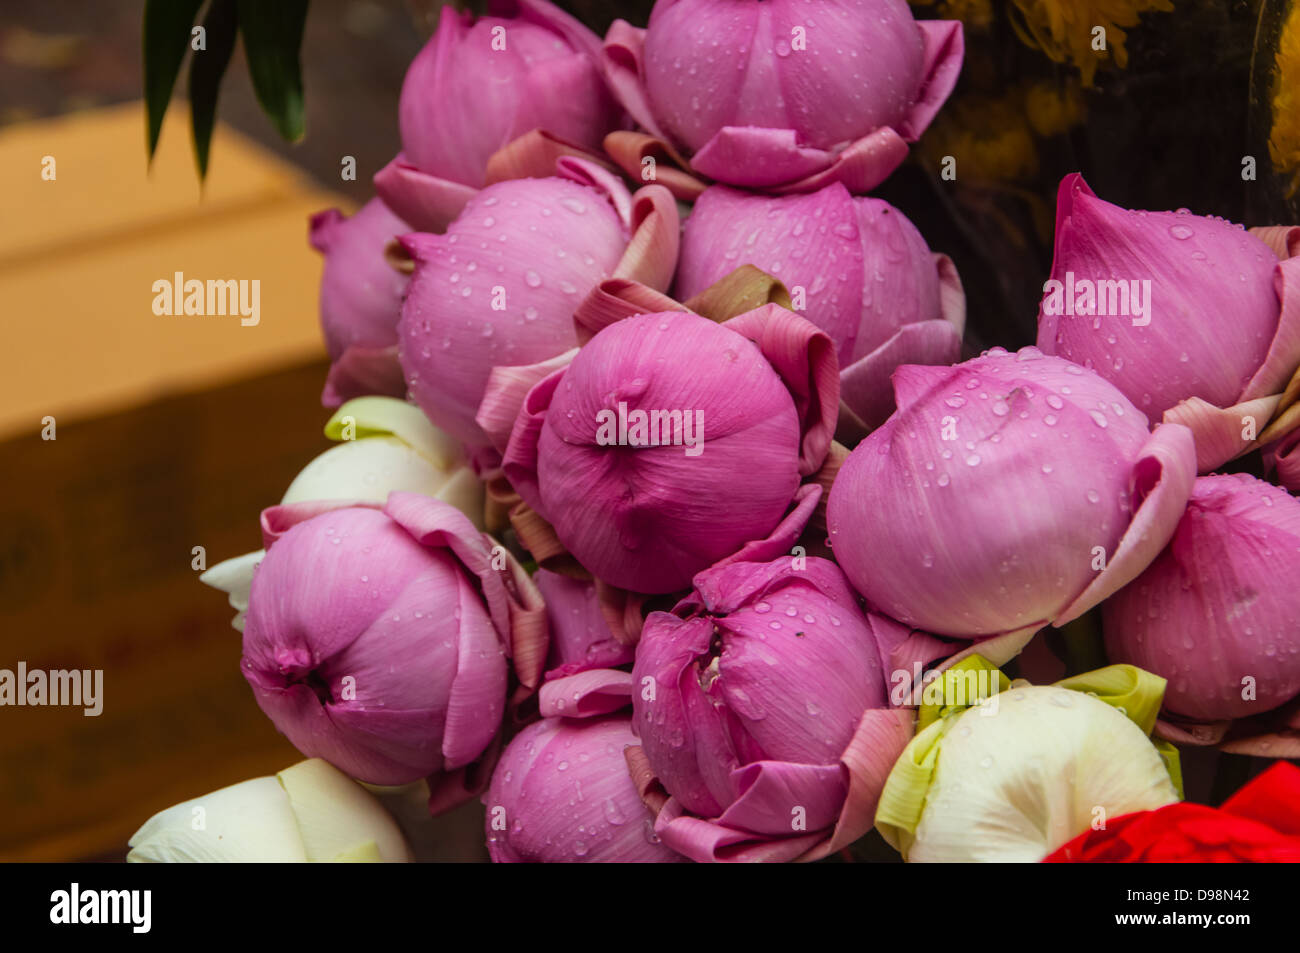 Pink And White Lotus Flower Buds For Sale In Market Stock Photo